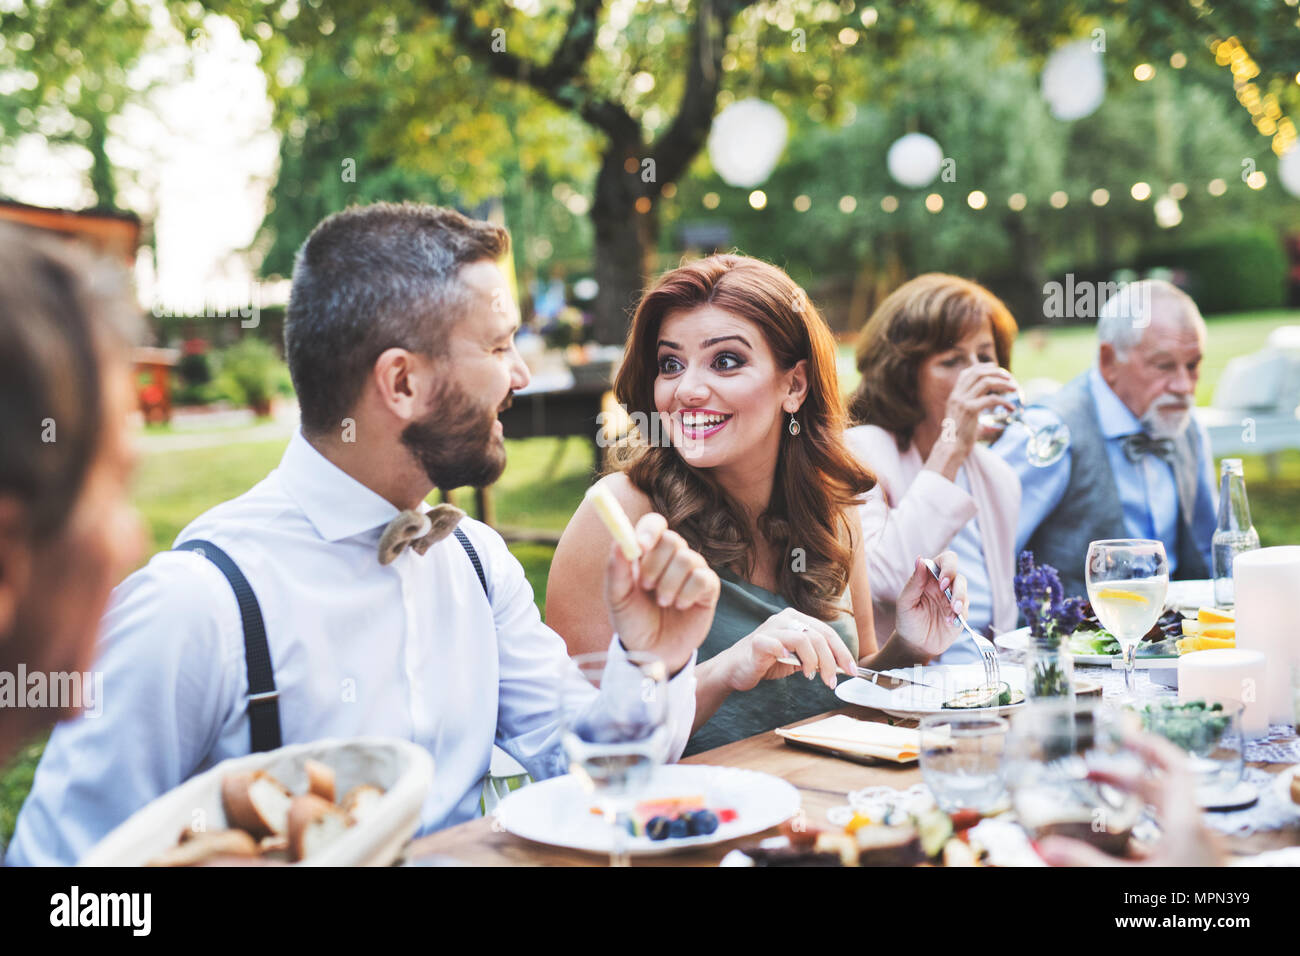 Guests eating at the wedding reception outside in the backyard. Stock Photo